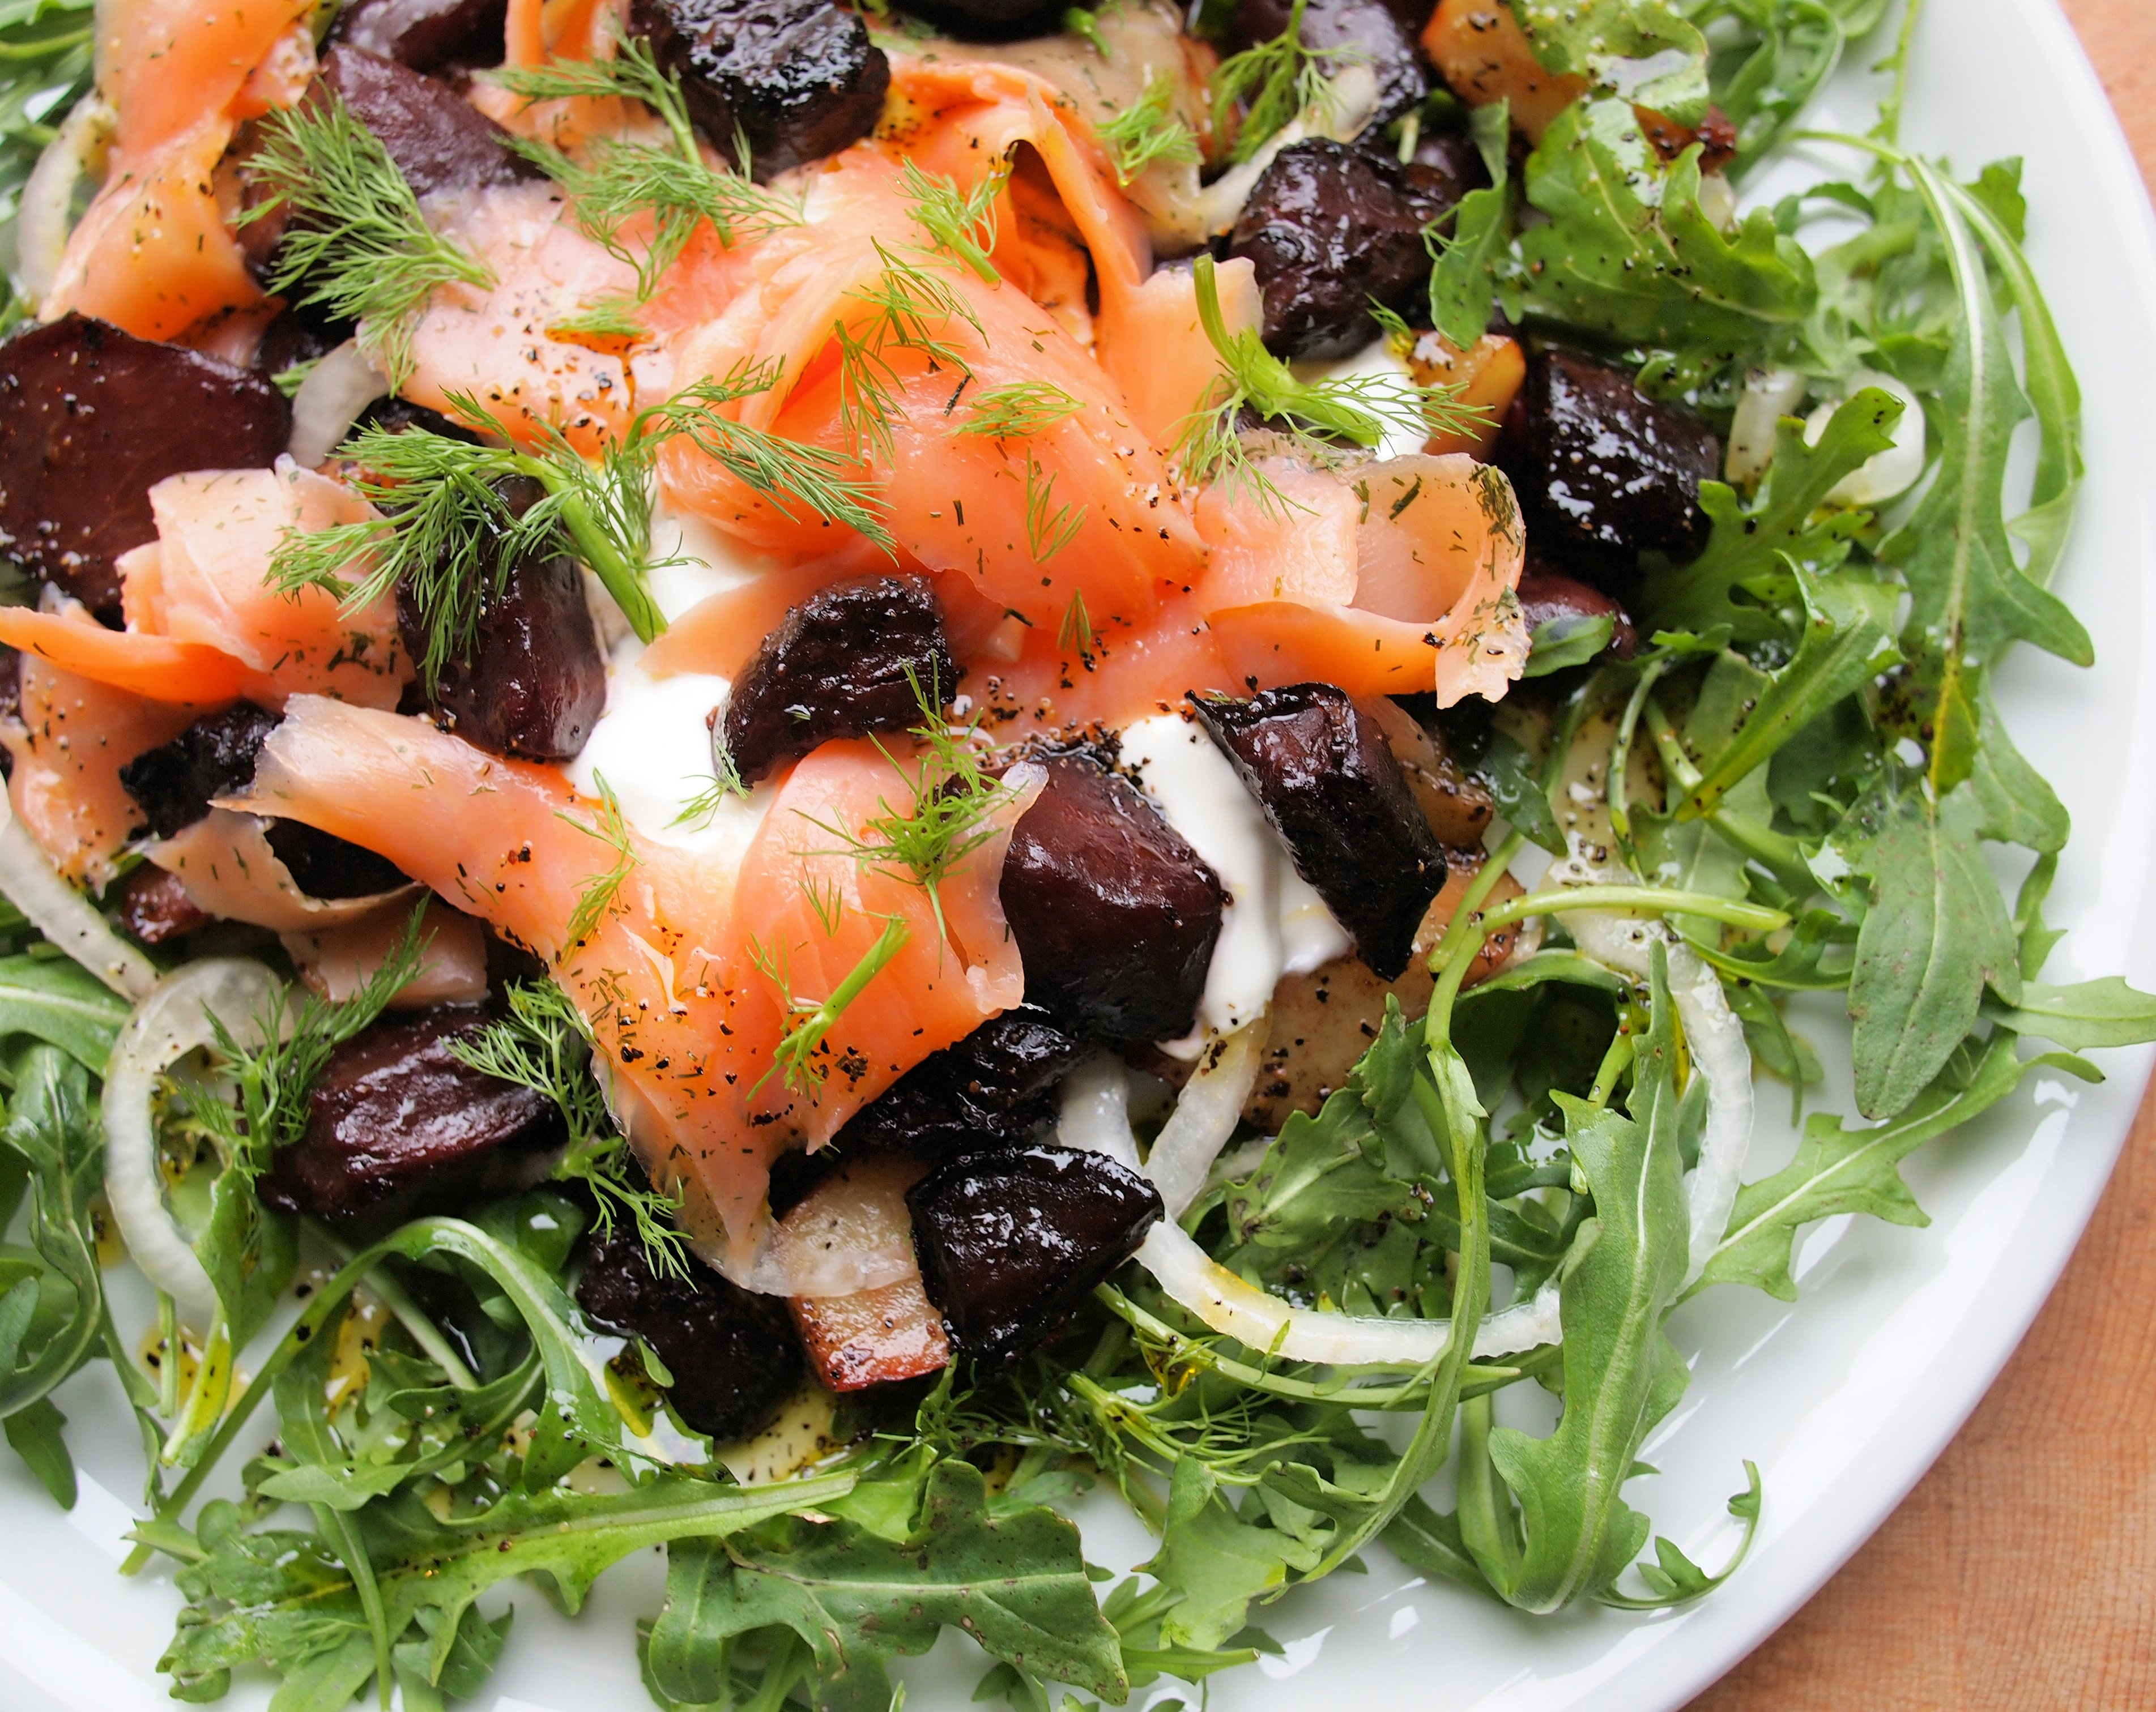 Hot Beetroot and Potato Salad with Smoked Trout and Dill Cream